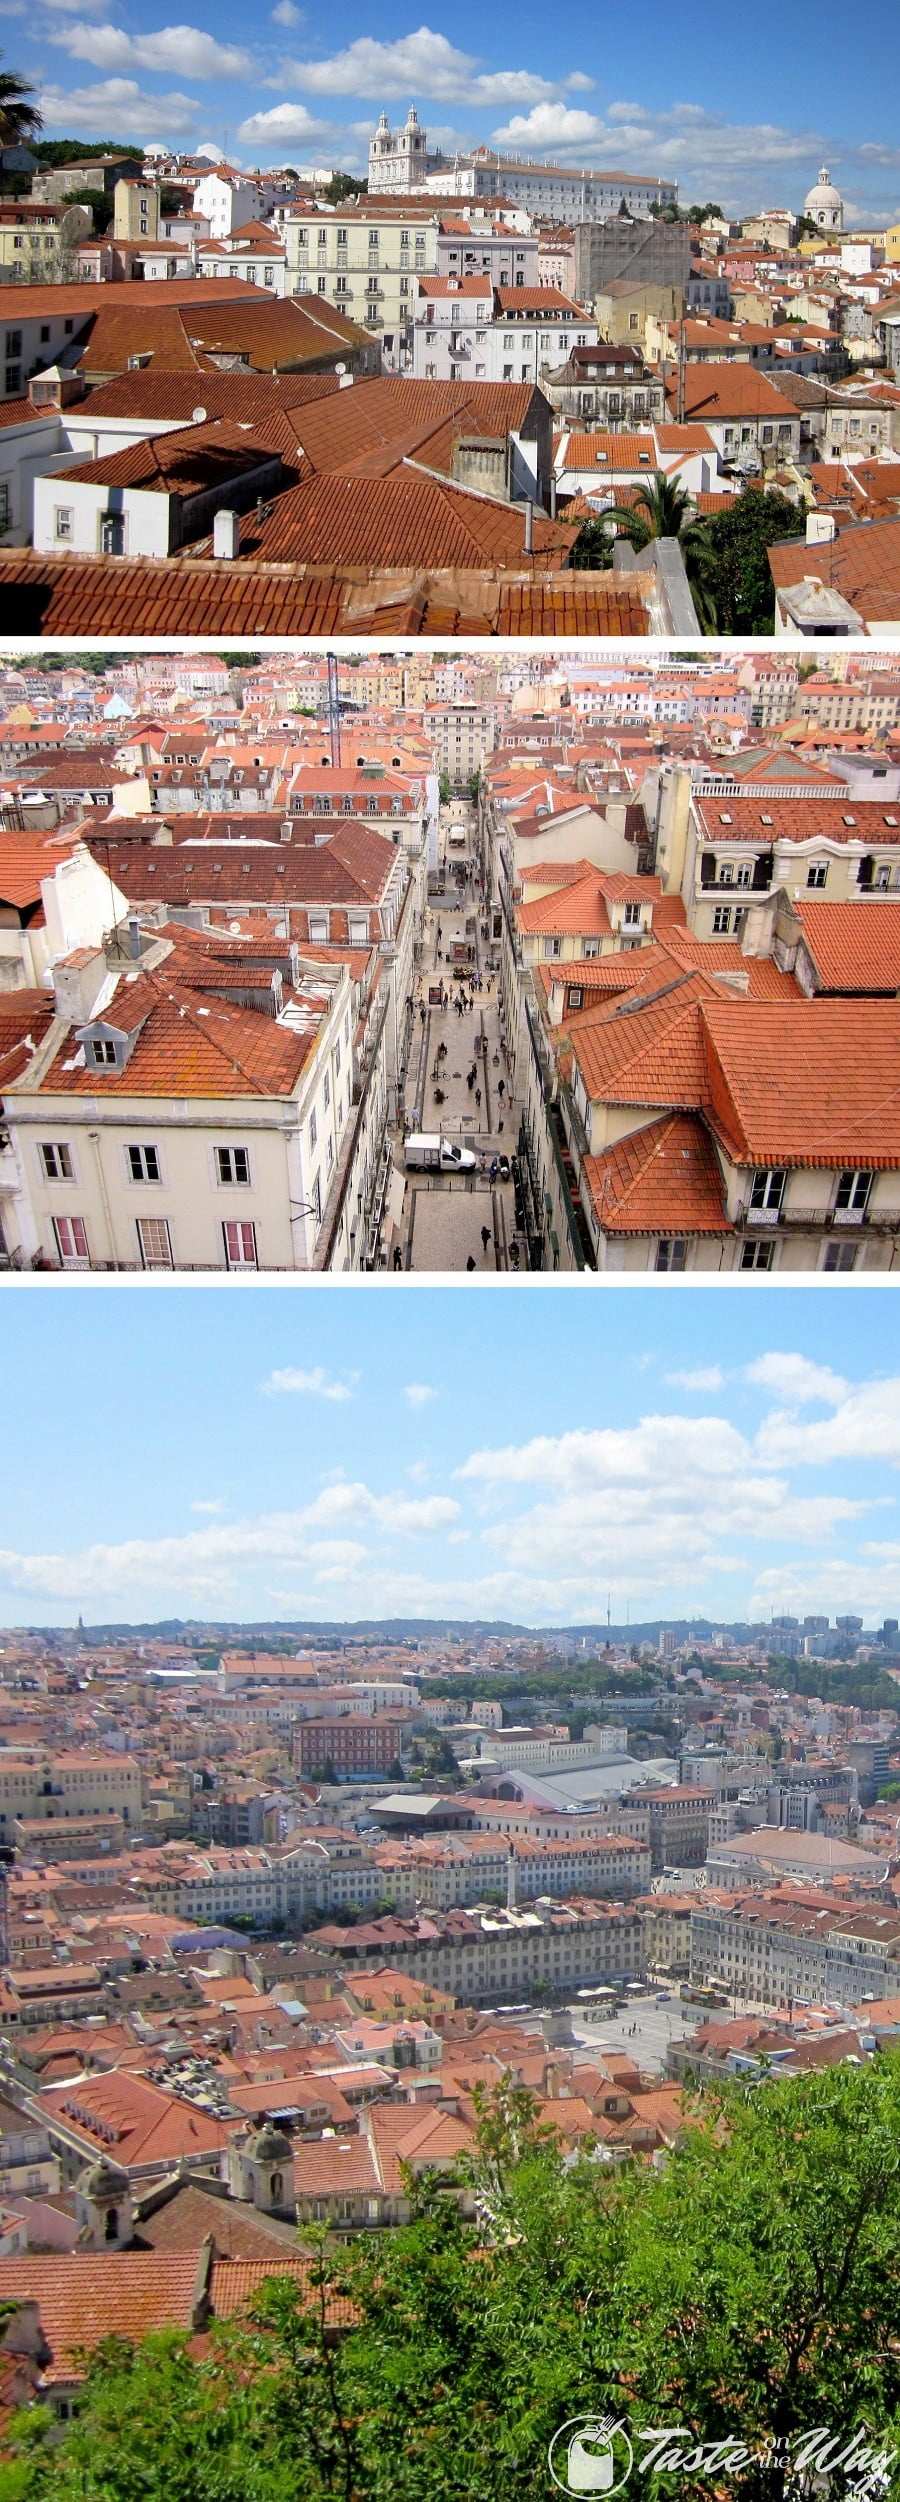 One of the top fun #thingstodo in #Lisbon, #Portugal is to find a good free spot to enjoy the views of rooftops. Check out for more! #travel #photography @tasteontheway